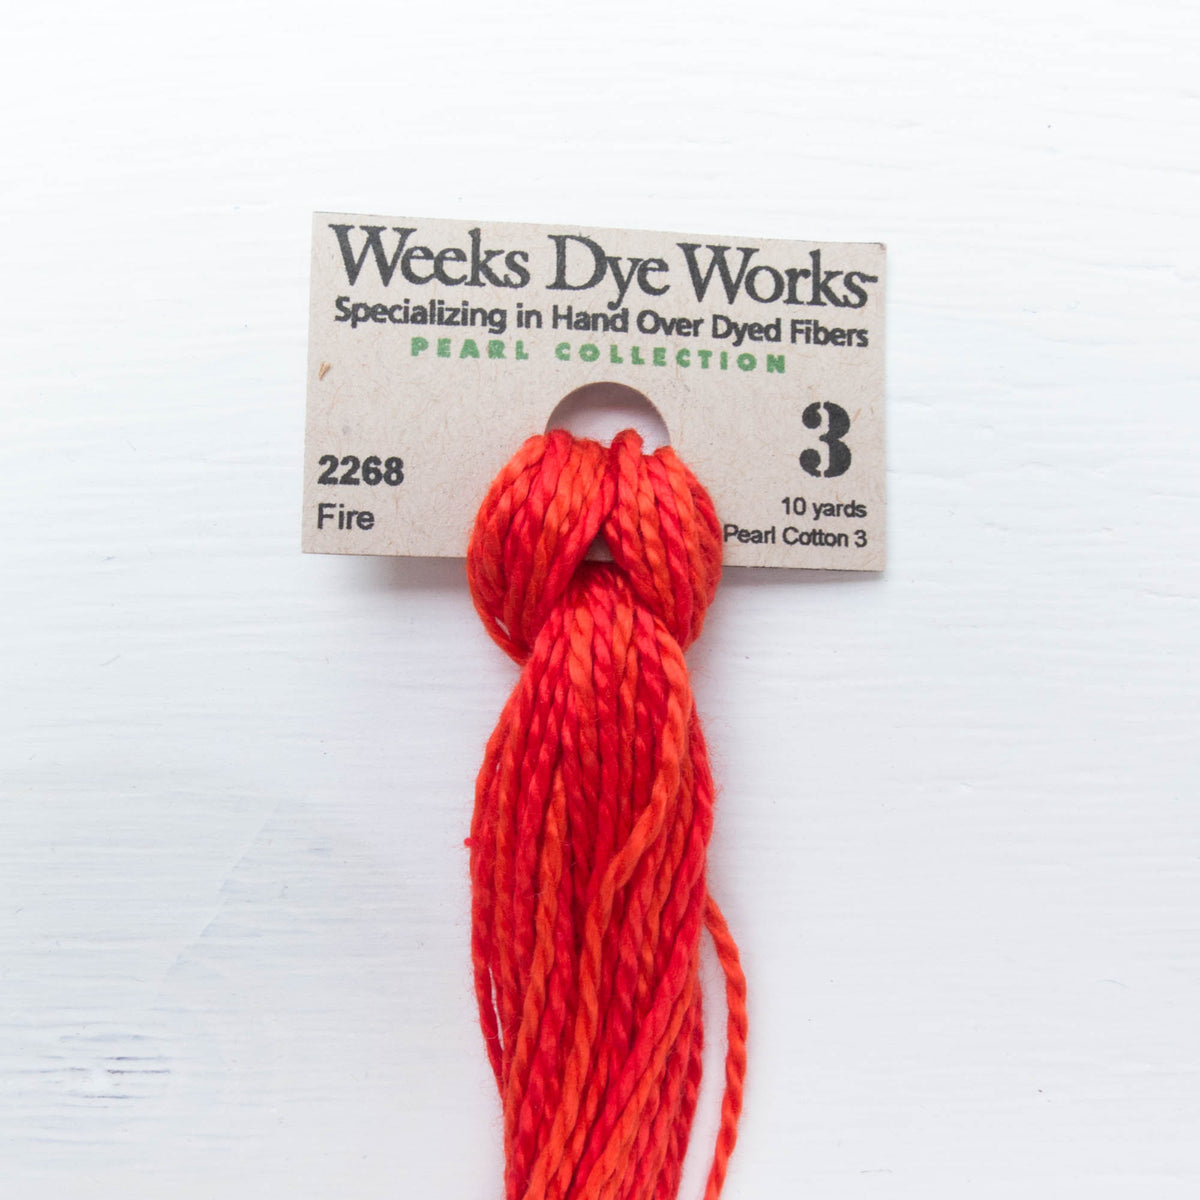 Size 3 Perle Cotton Thread - Weeks Dye Works Fire (2268) Perle Cotton - Snuggly Monkey